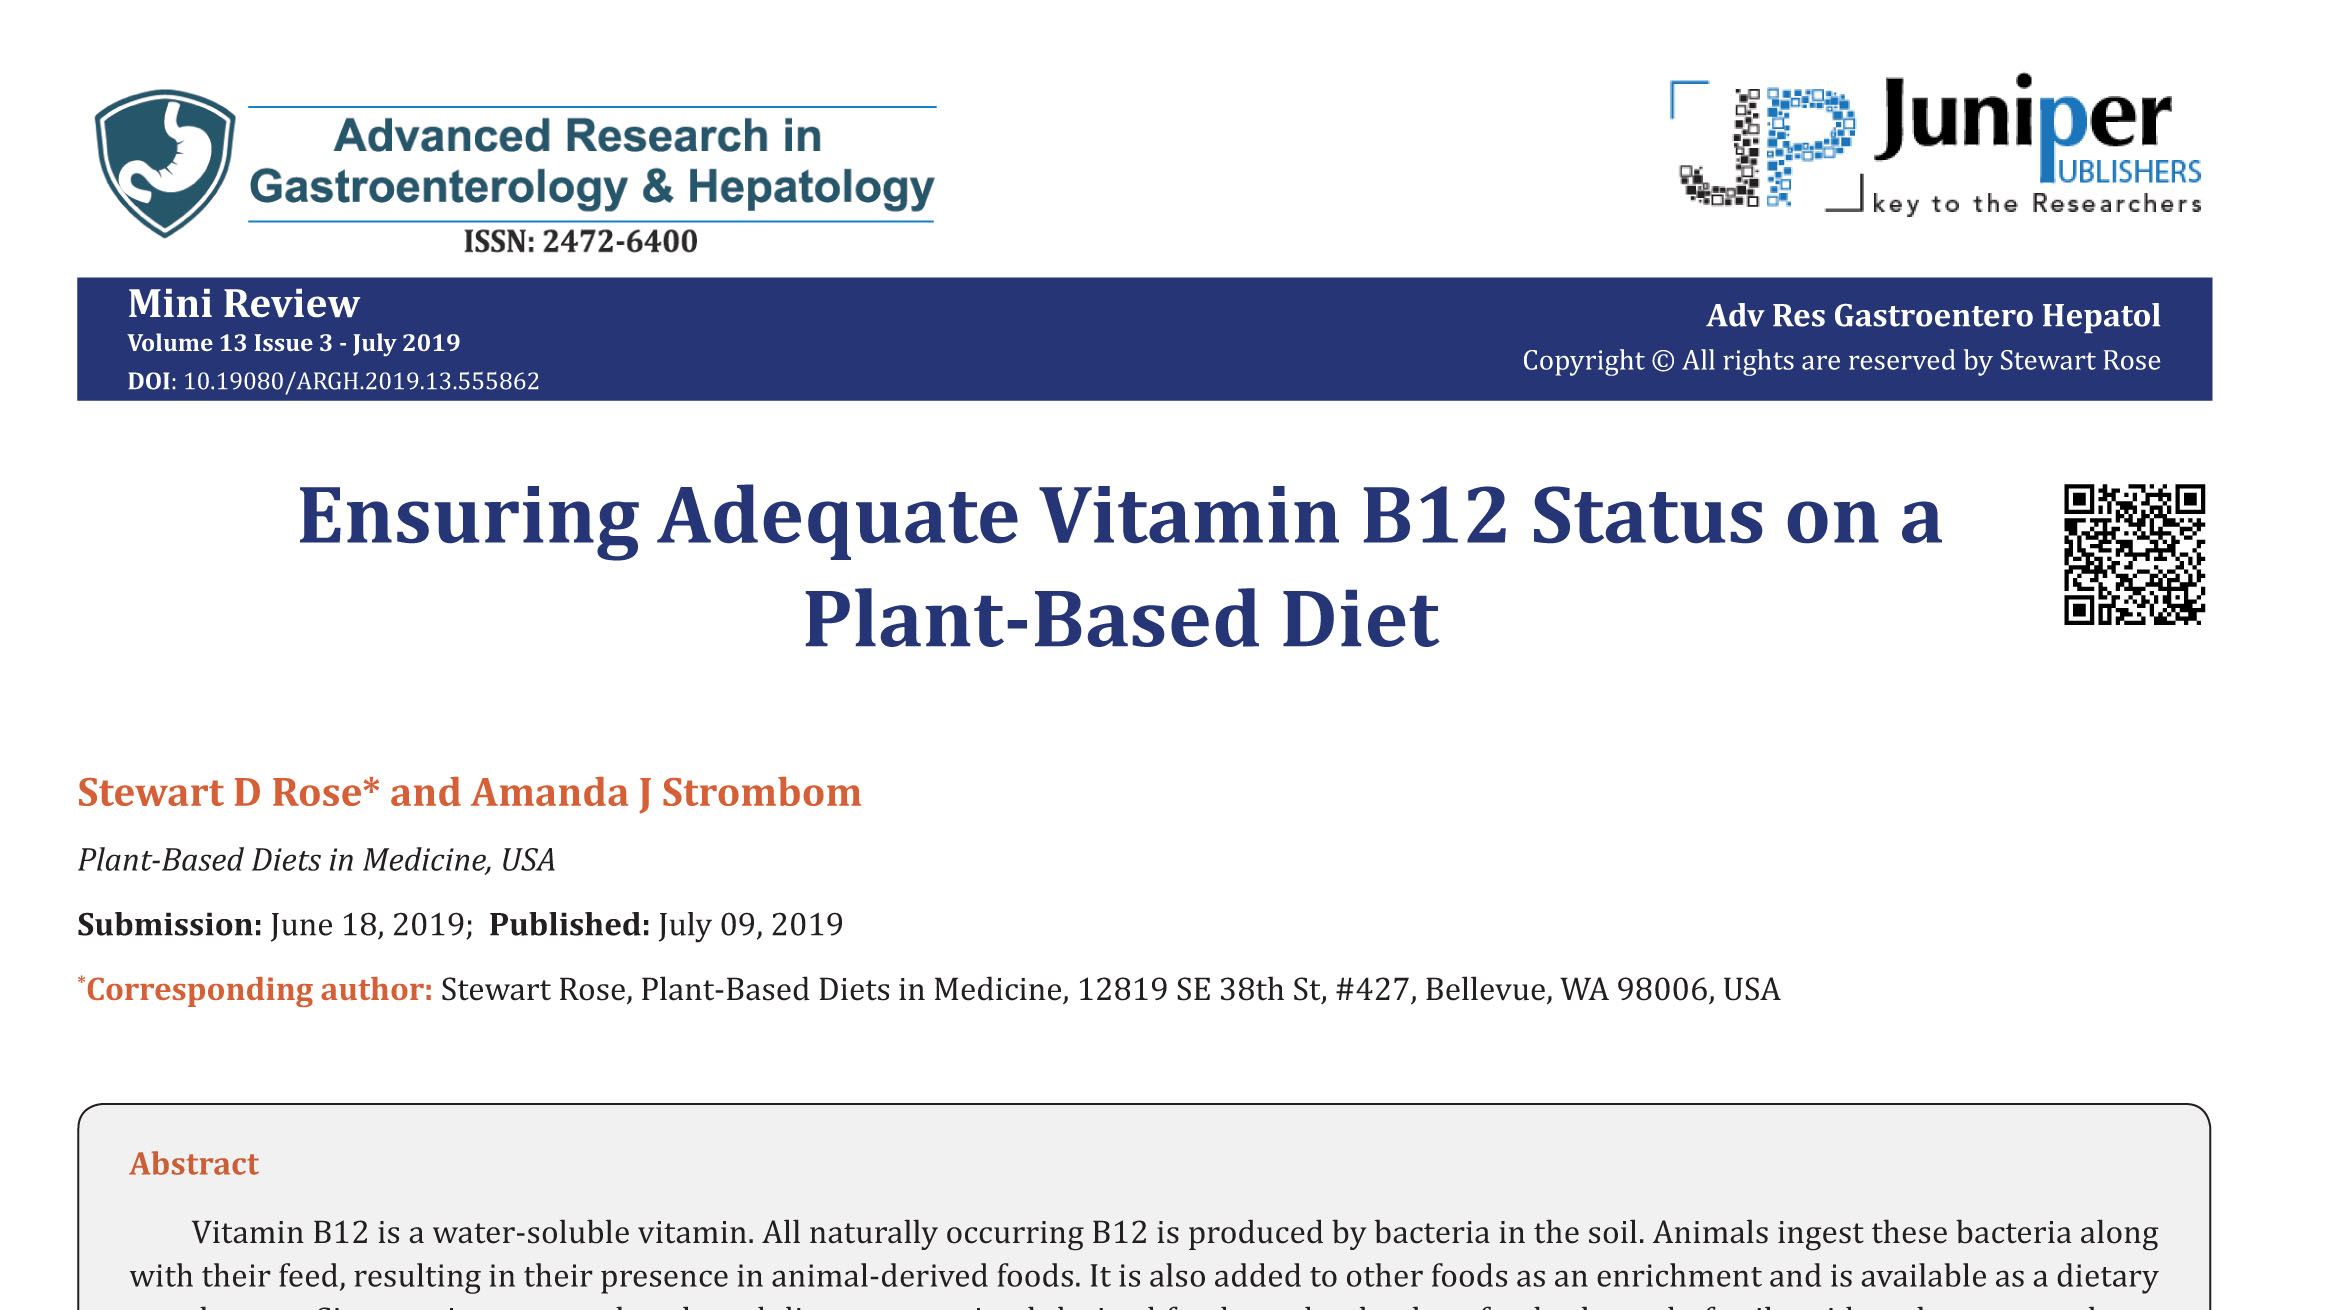 Ensuring Adequate Vitamin B12 Status on a Plant-Based Diet